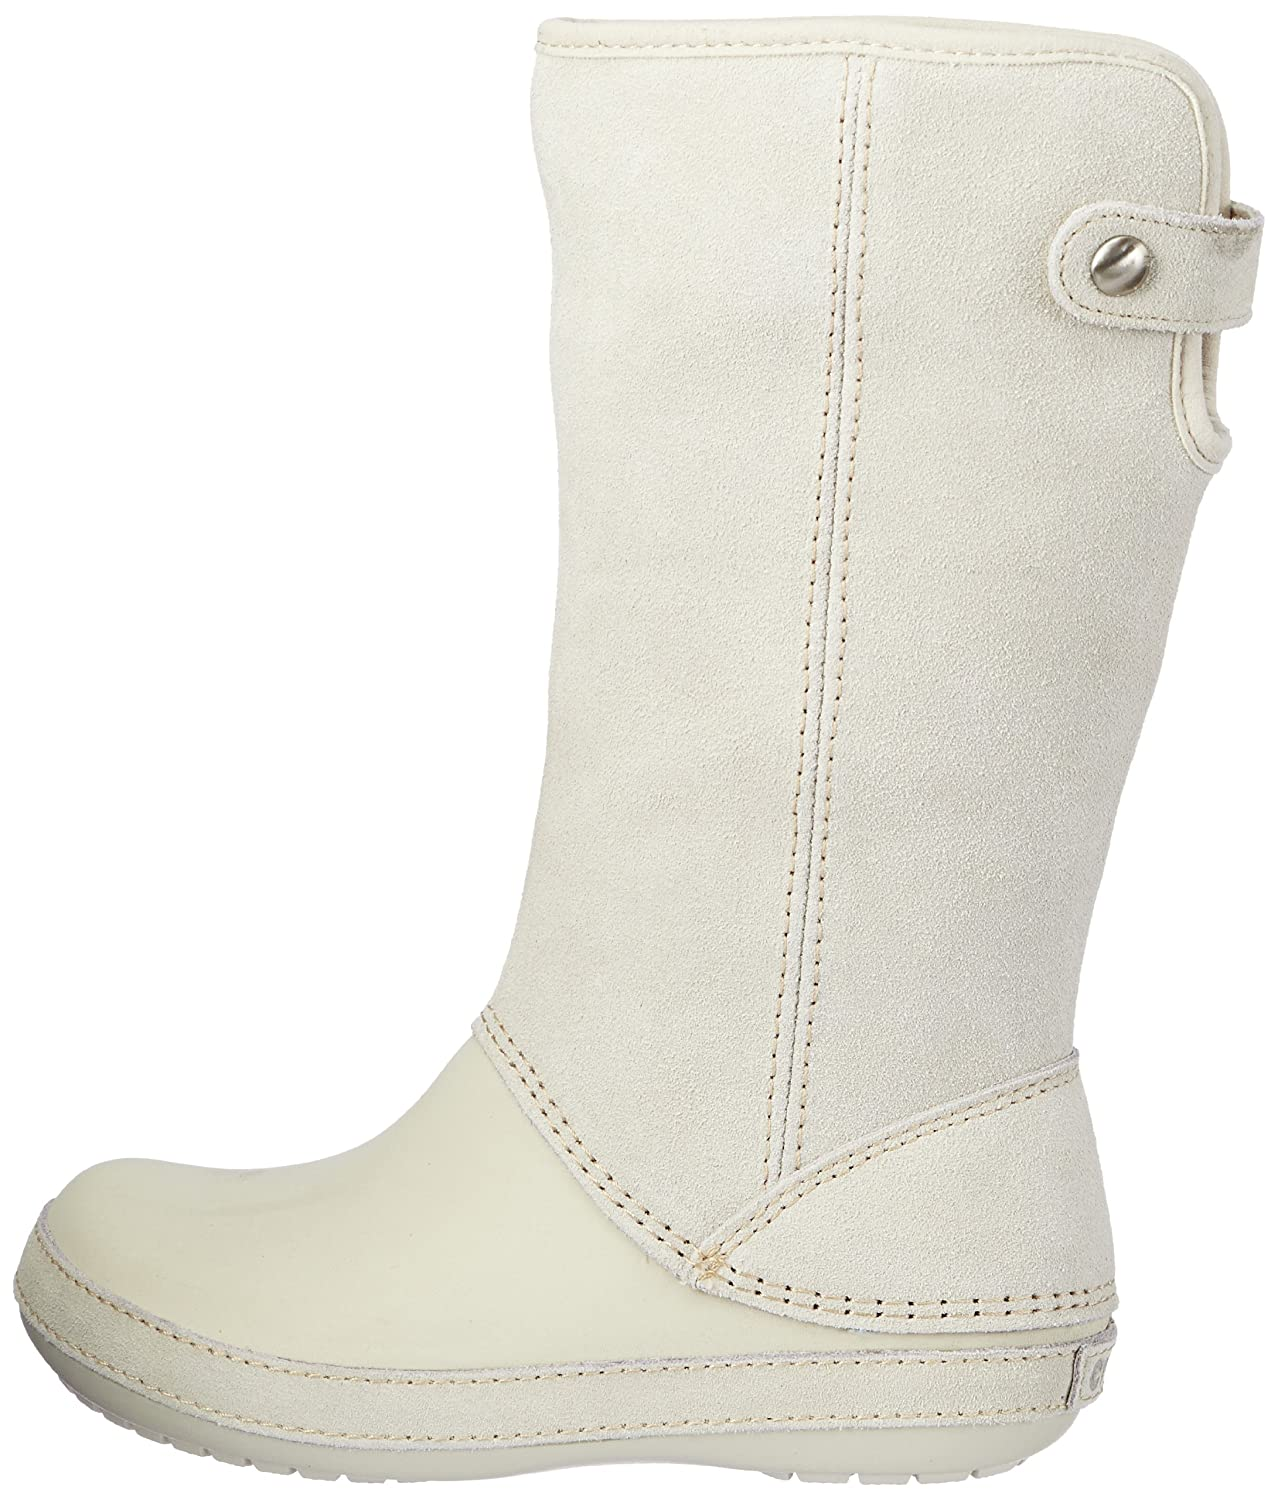 0ef3af5c70 Crocs Women s Berryessa Knee High Boots Stucco Stucco 9 UK  Buy Online at  Low Prices in India - Amazon.in